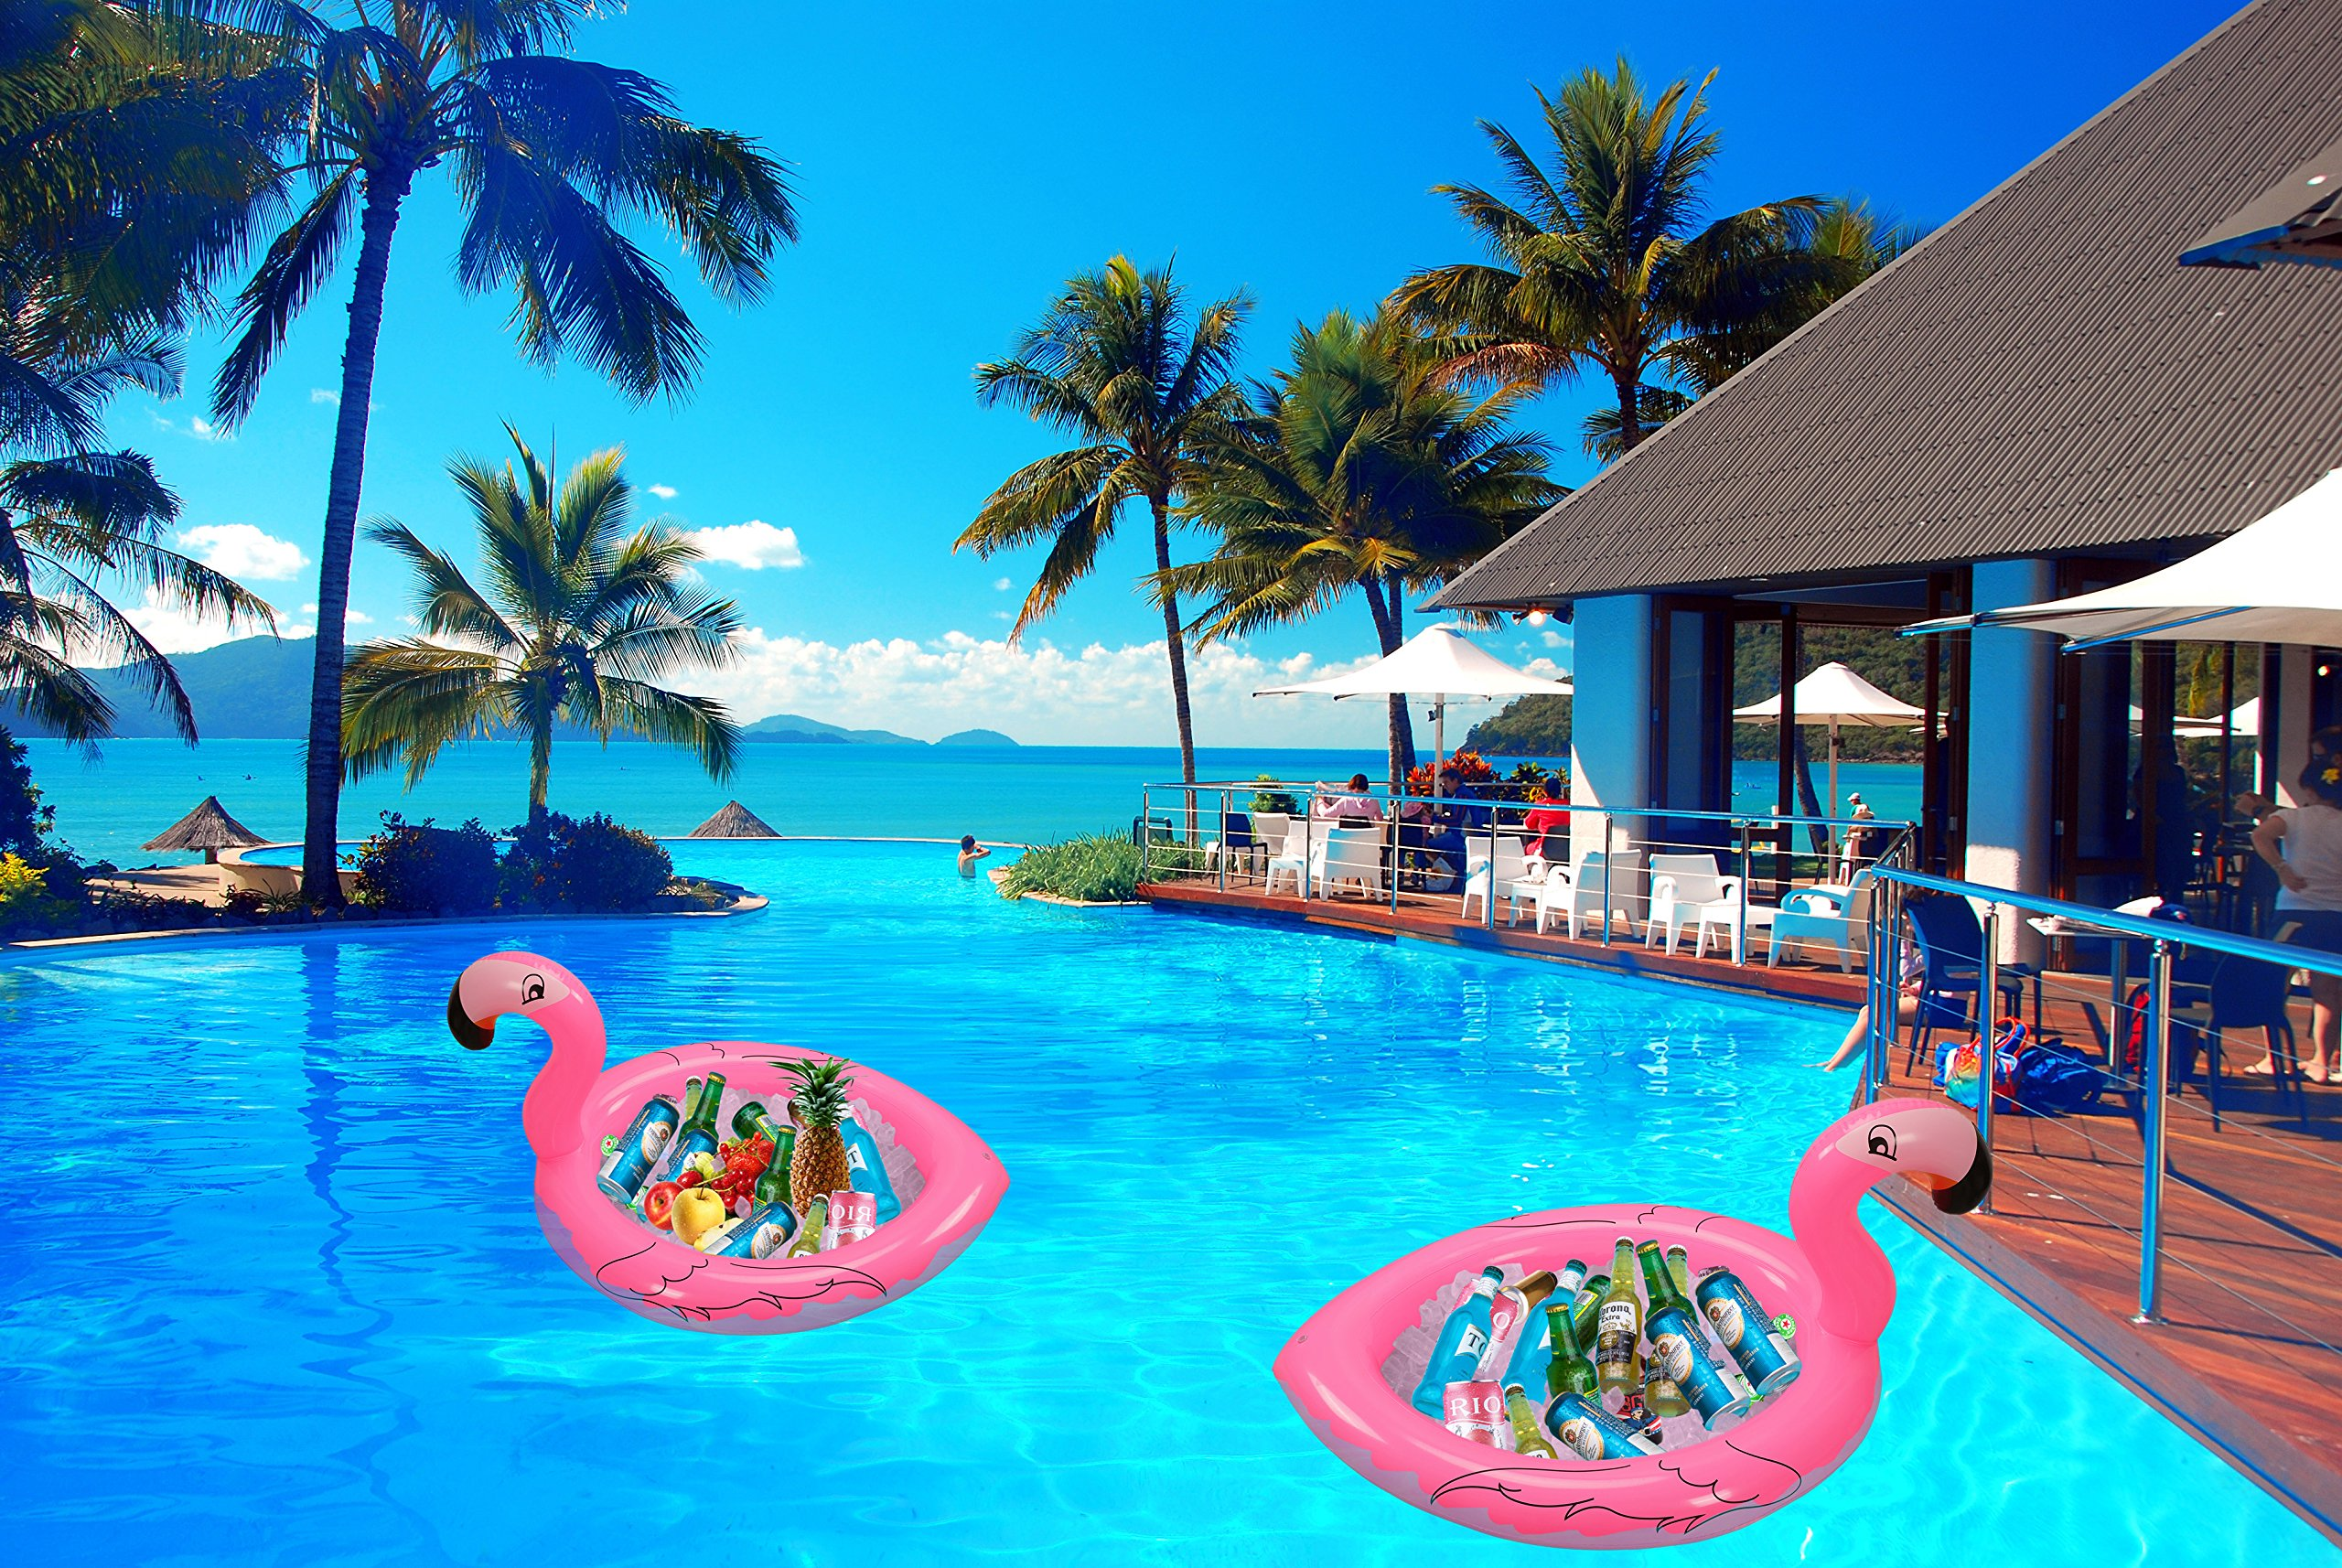 Inflatable Flamingo Cooler Salad Buffet Serving Bar Tray Ice Chest Drink Holders for BBQ Picnic Pool Flamingo Beach Bachelorette Hawaiian Luau Party Supplies Decorations